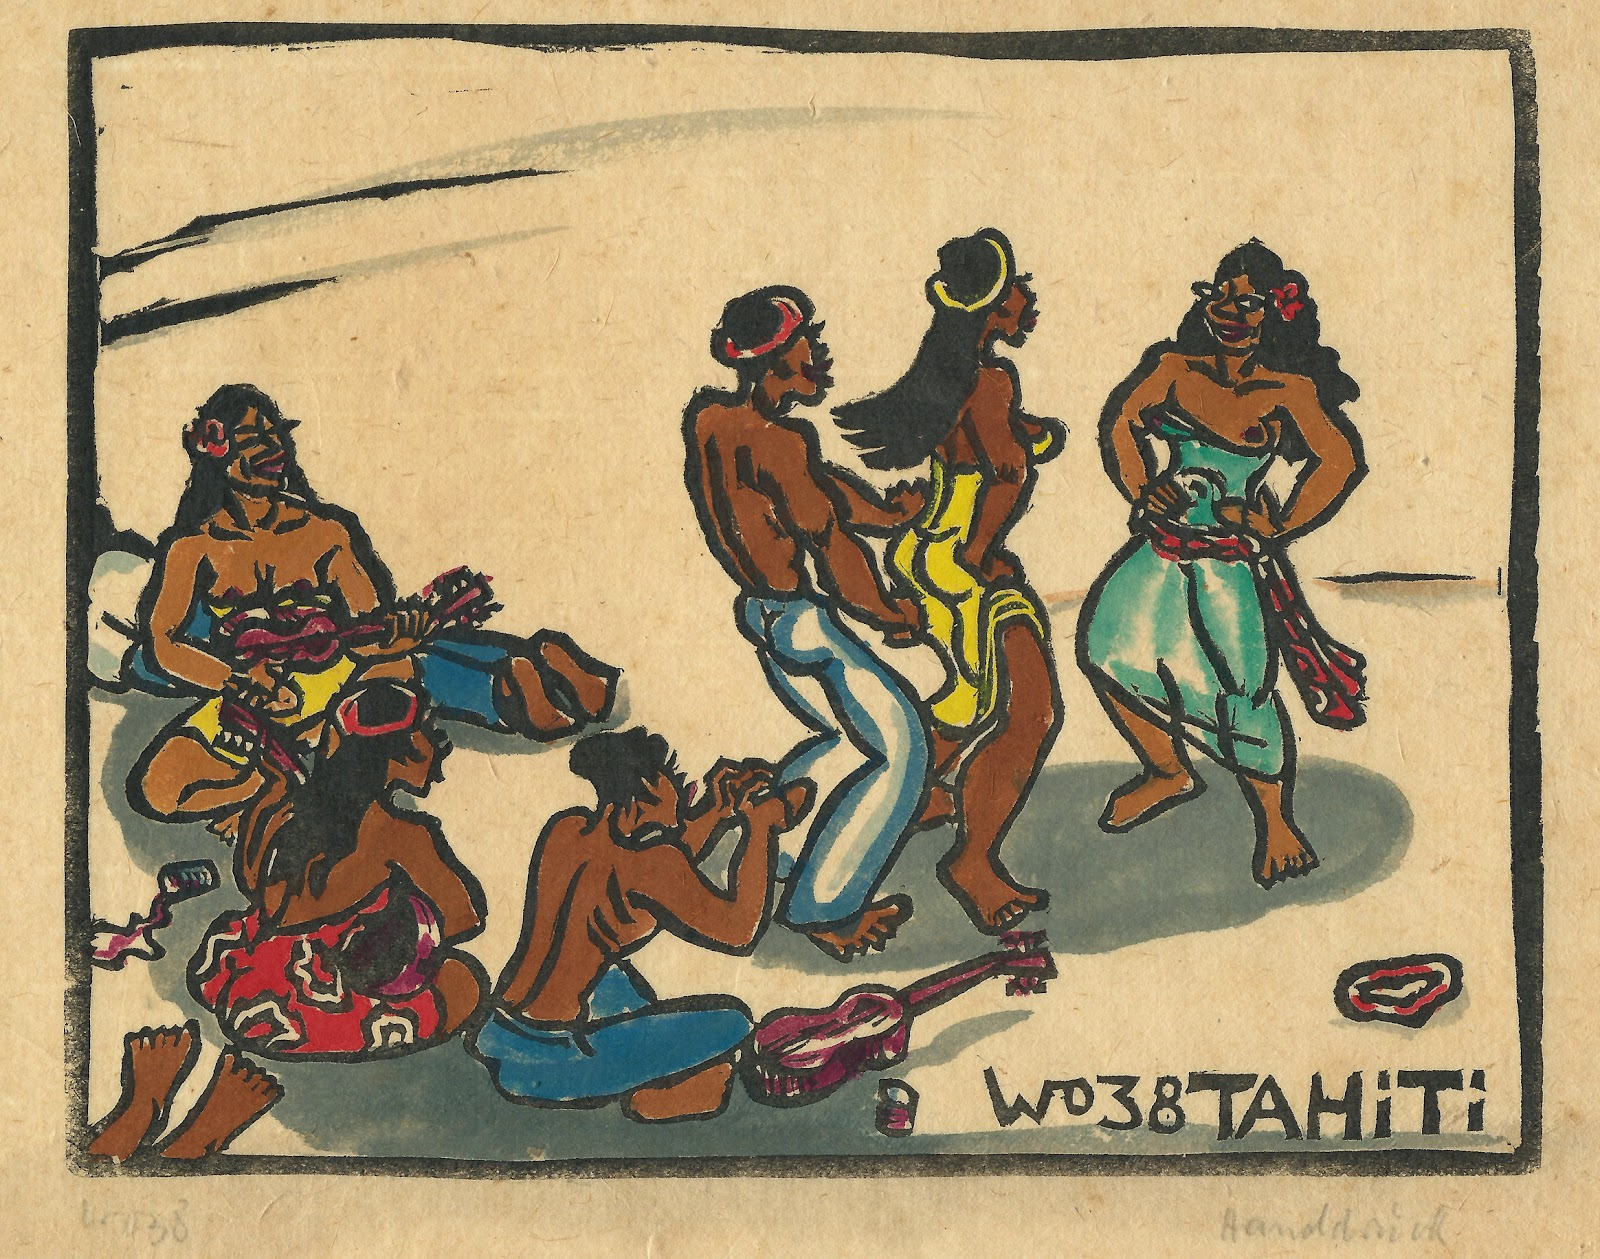 Tahitian musicians and dancers, hand colored block print, 1938, family-owned